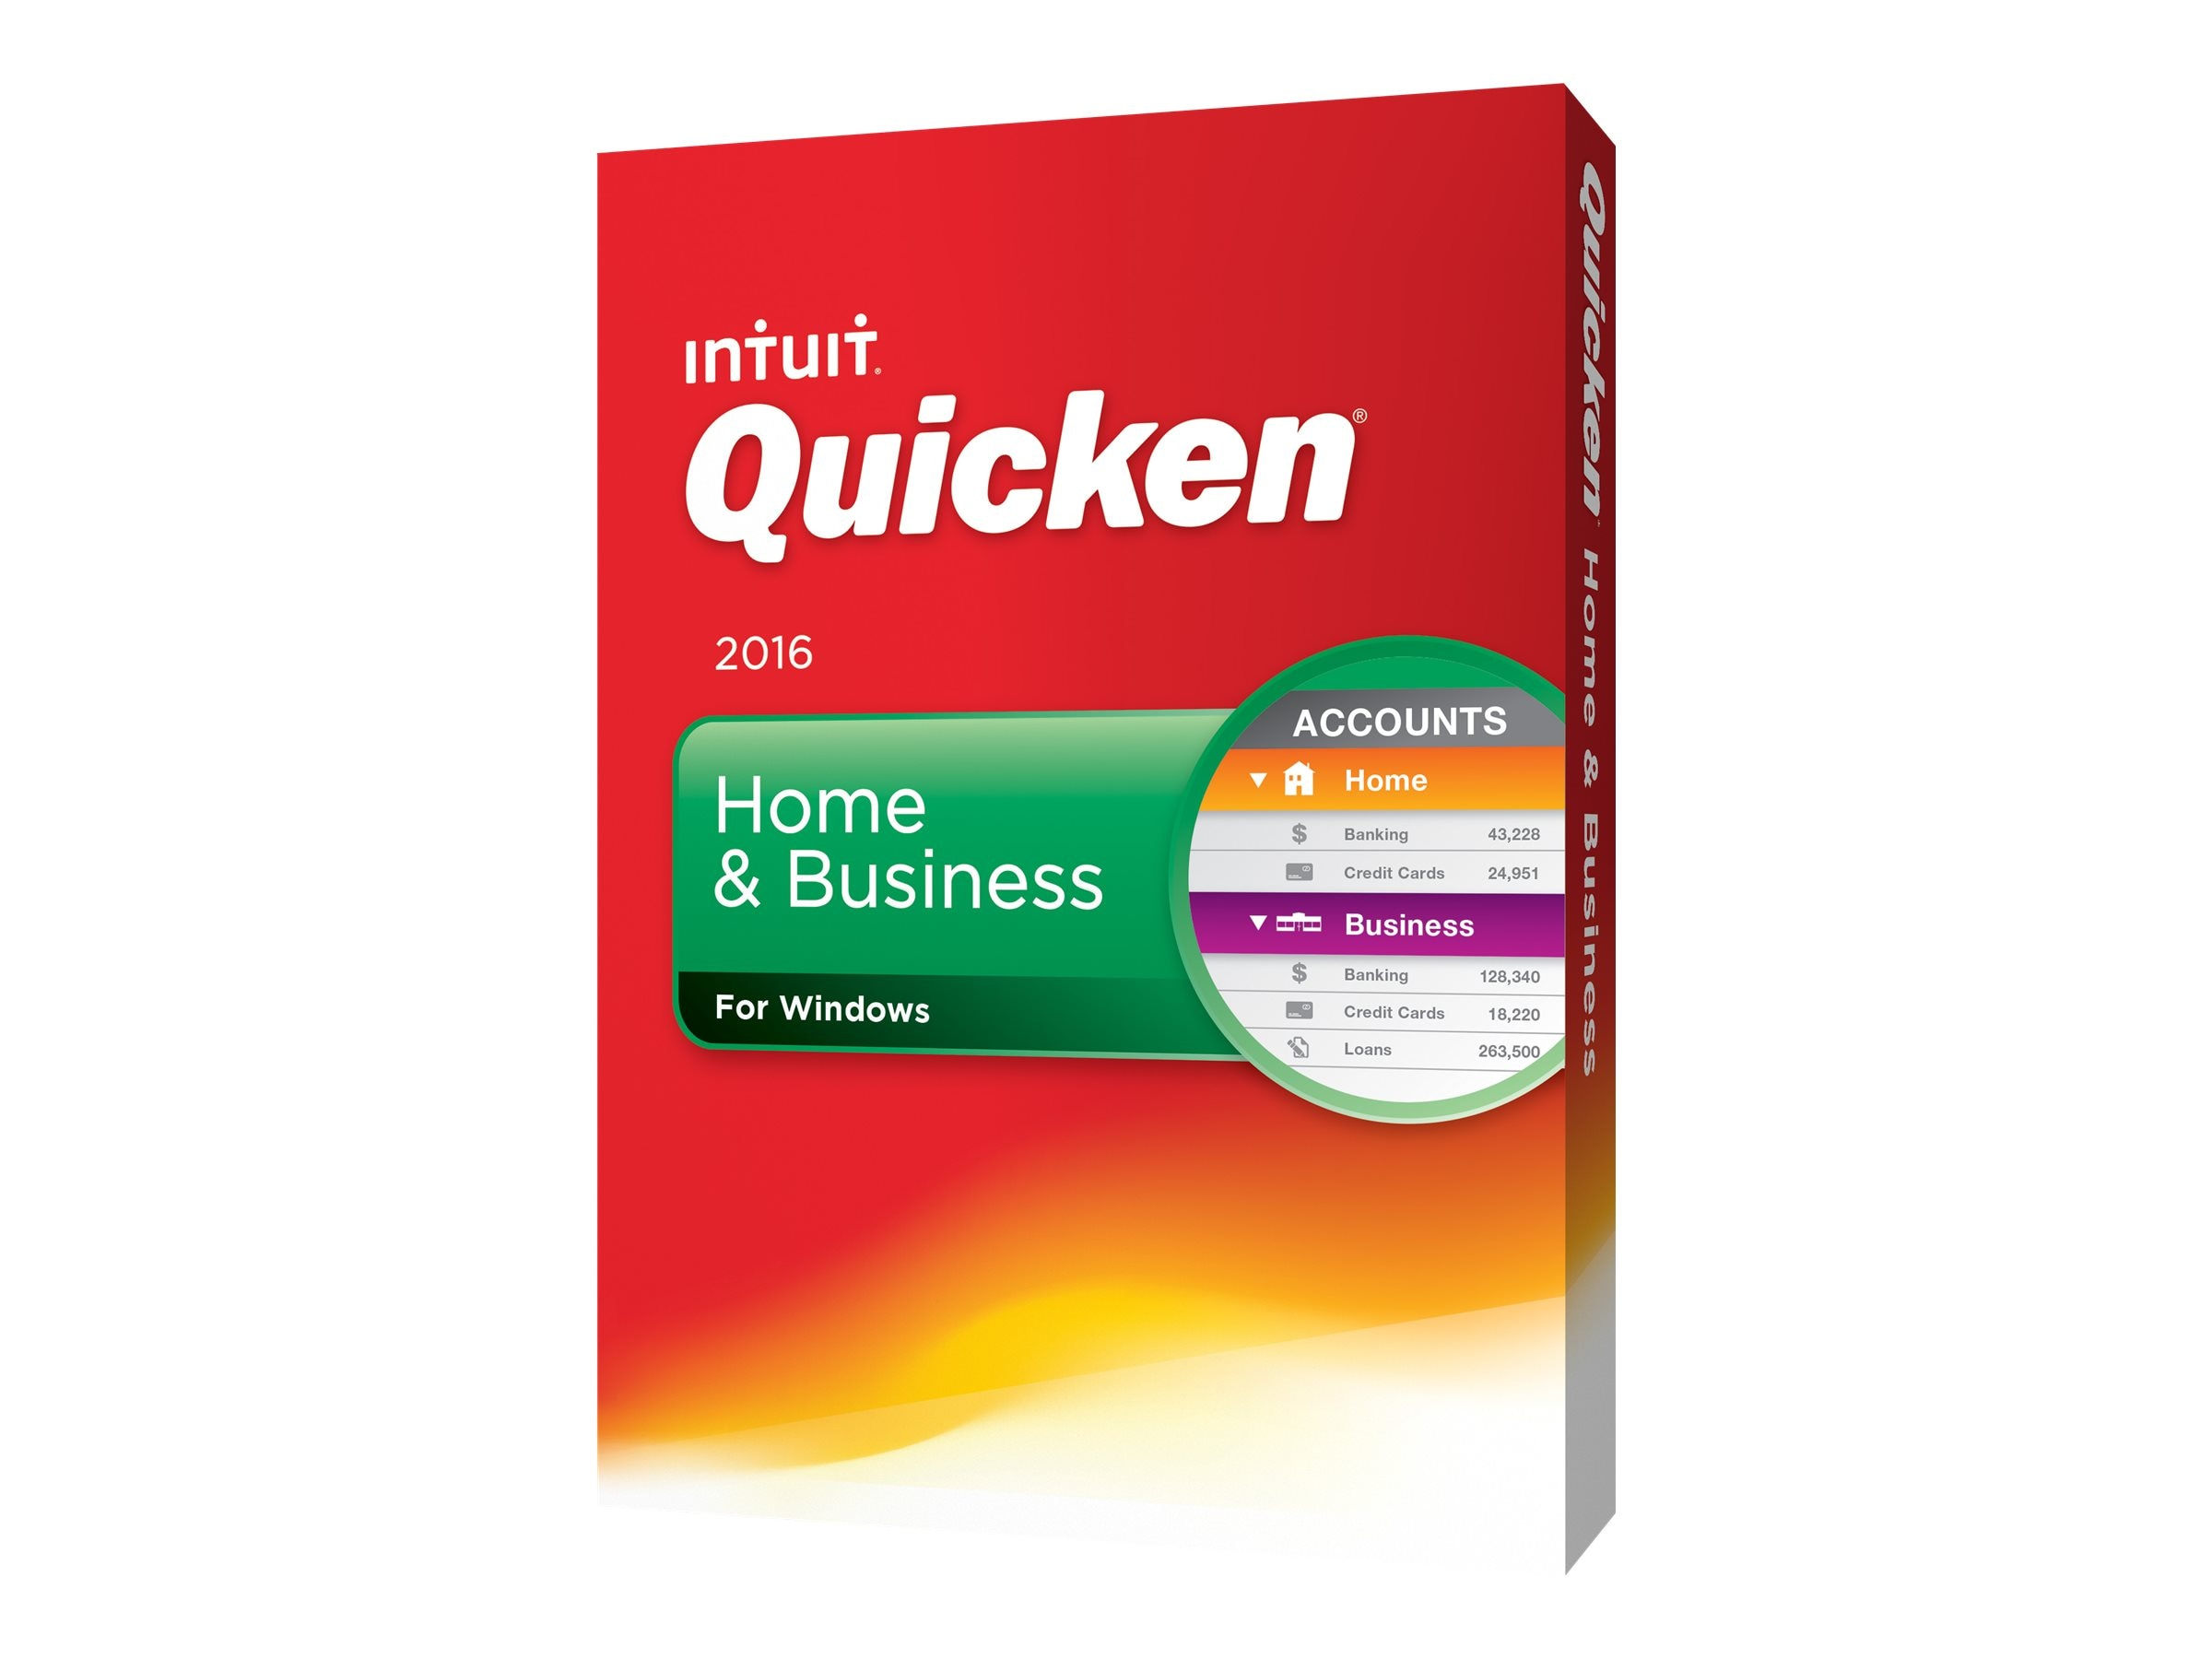 Intuit Quicken 2016 Home & Business, 426750, 31425888, Software - Financial